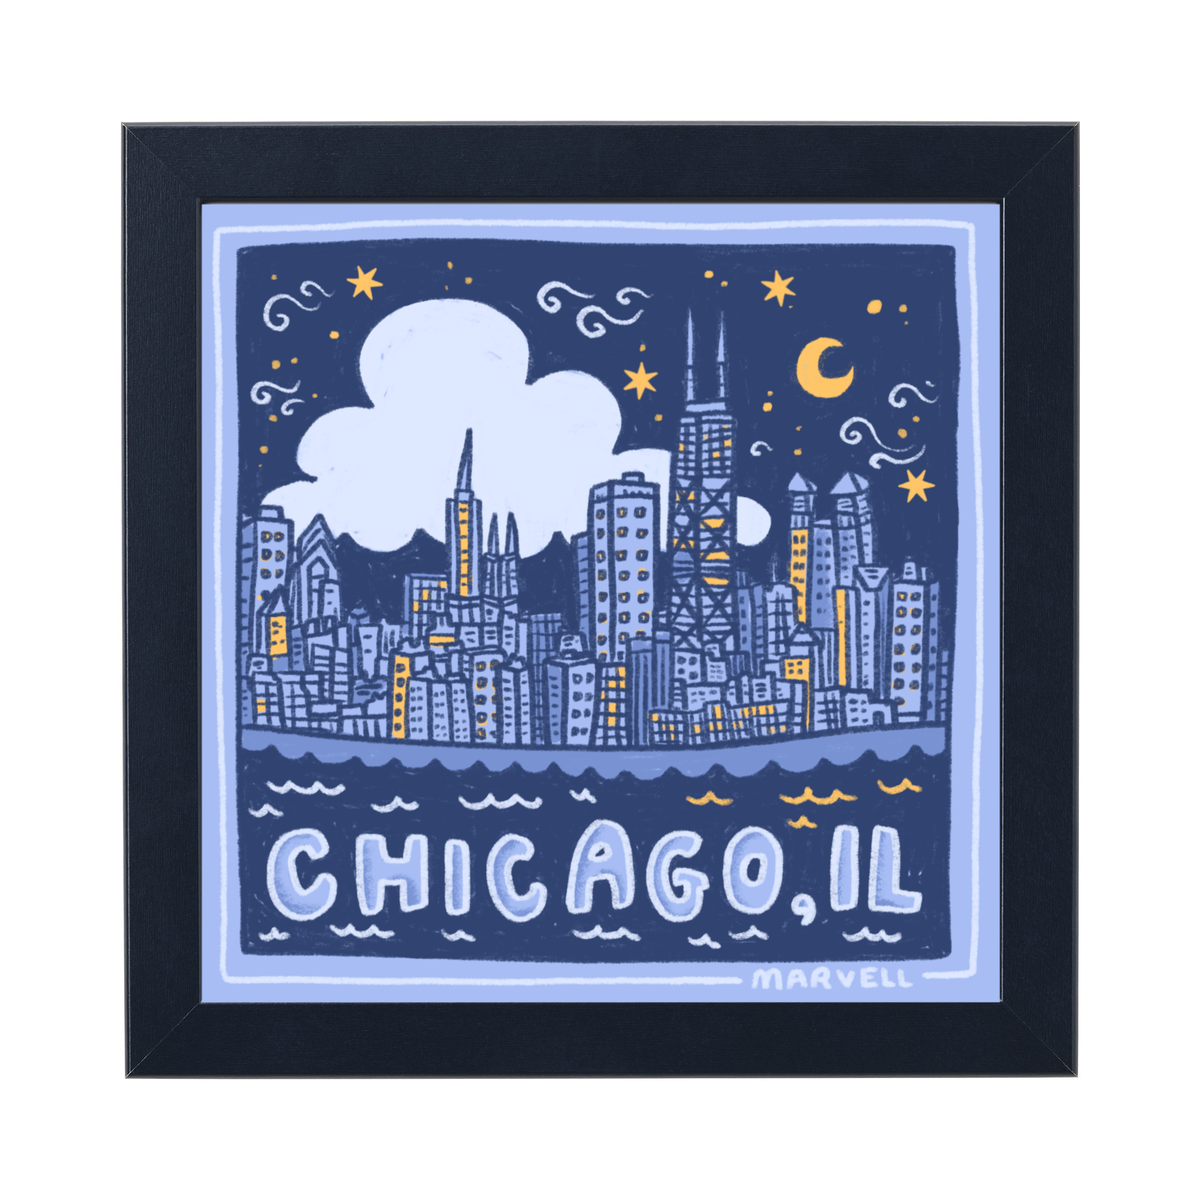 Image of Chicago Print!